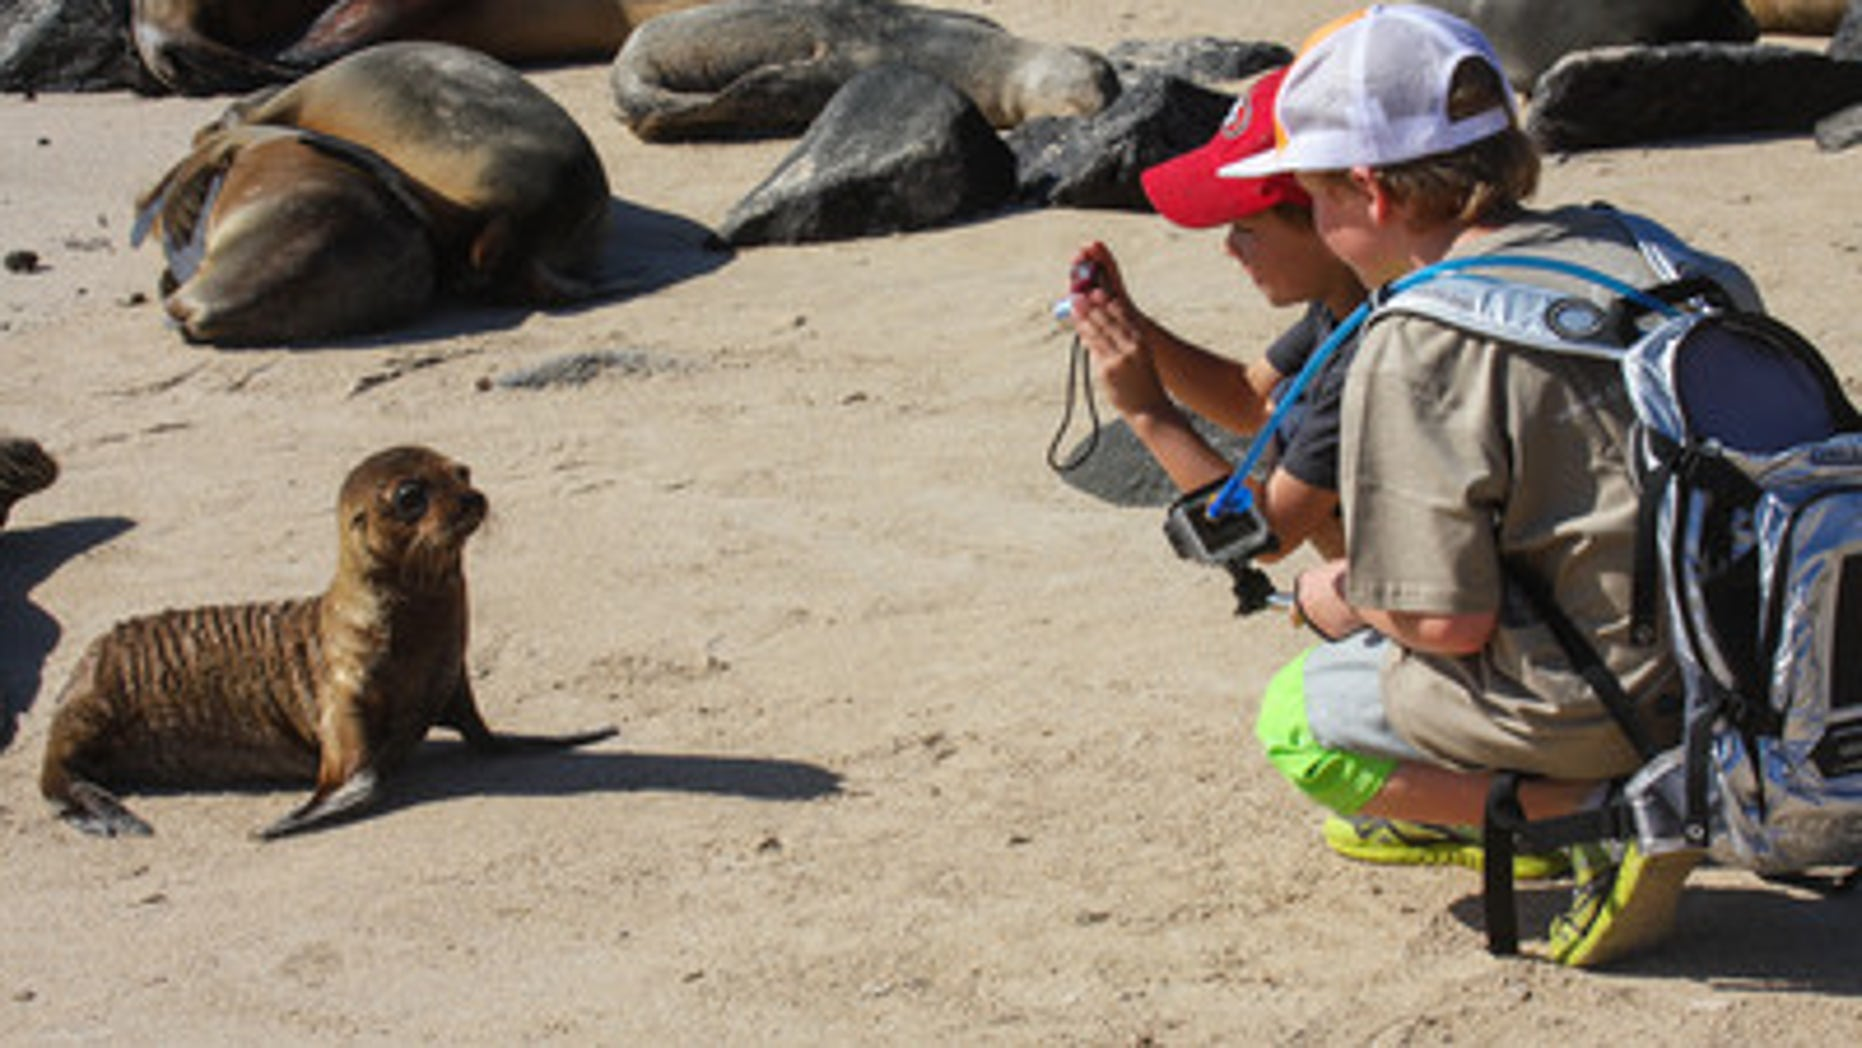 Taking pictures of the wildlife in the Galapagos Islands.